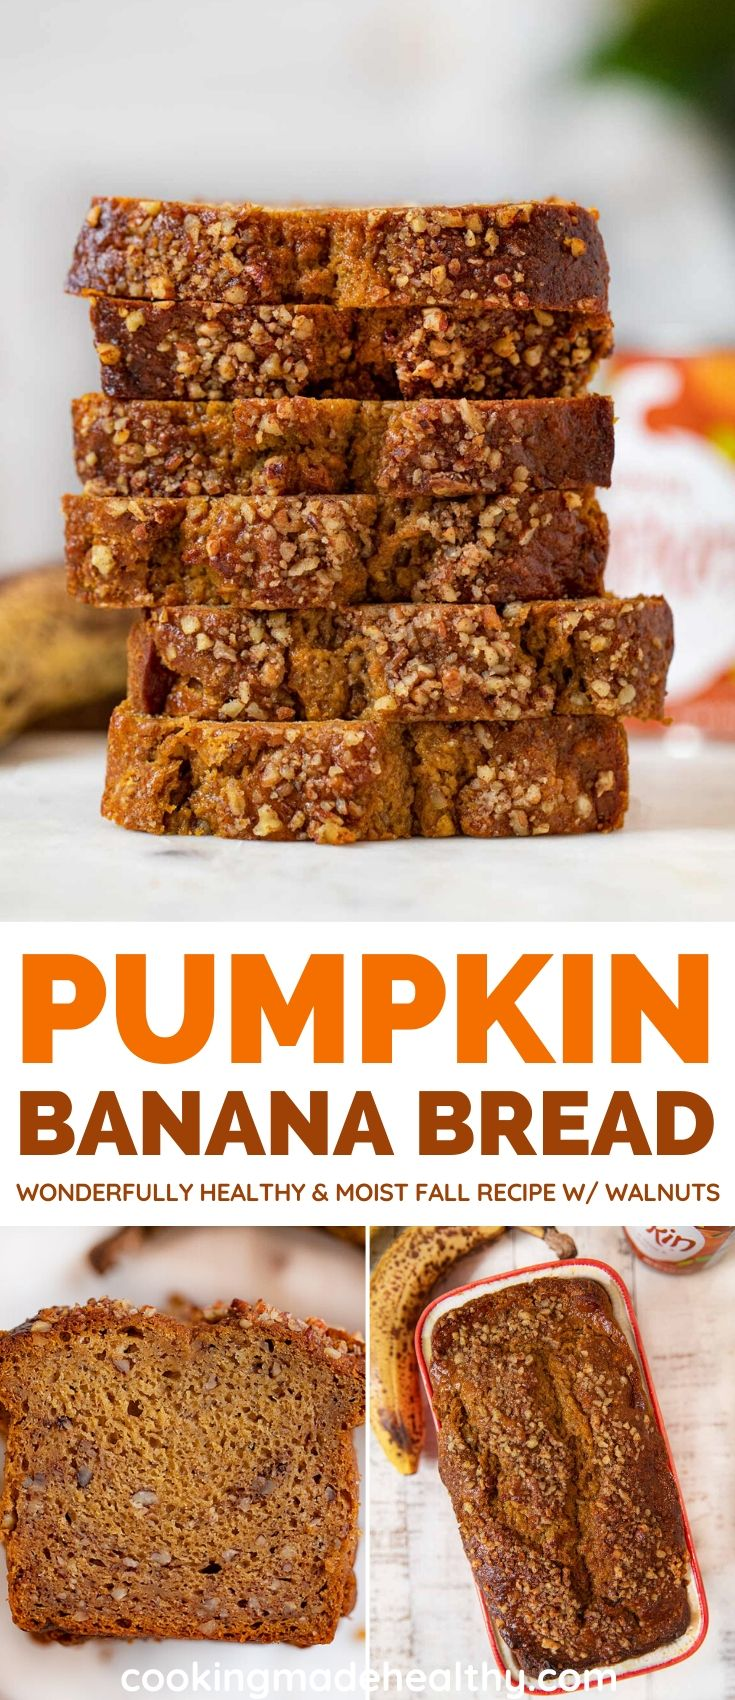 Whole Wheat Pumpkin Banana Bread collage